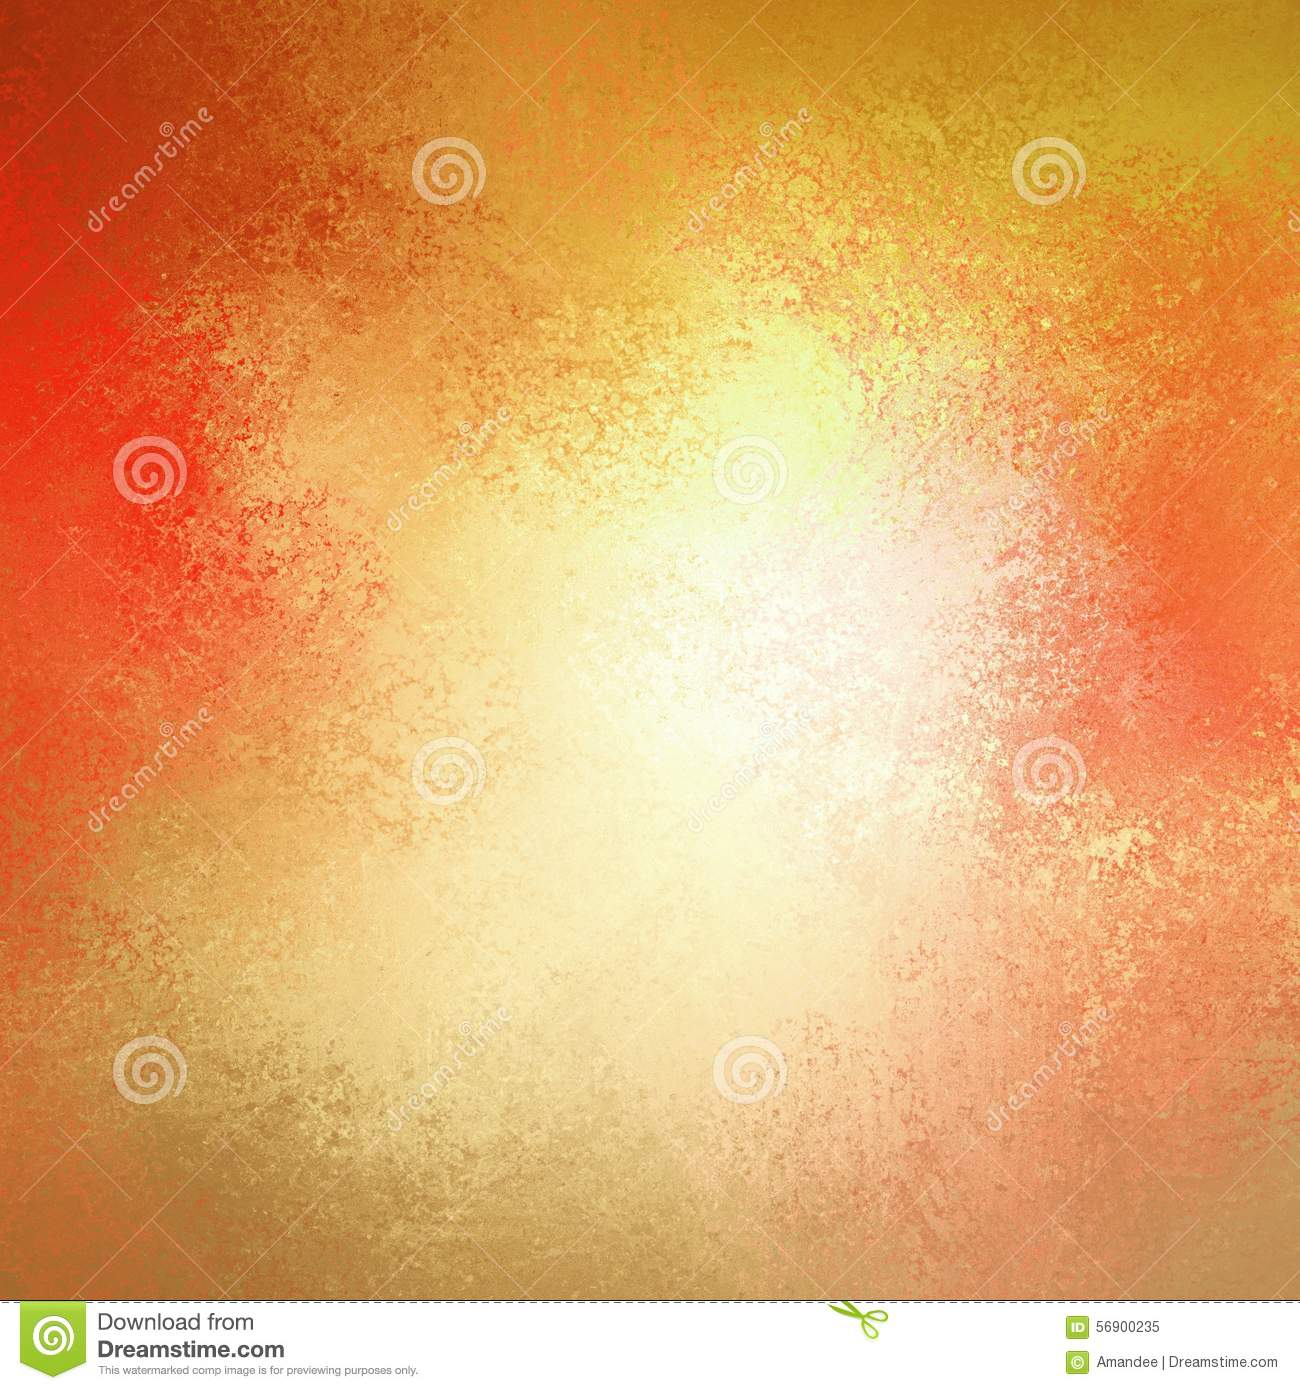 Warm autumn background in red pink gold yellow and orange with white center and vintage grunge background texture, colorful